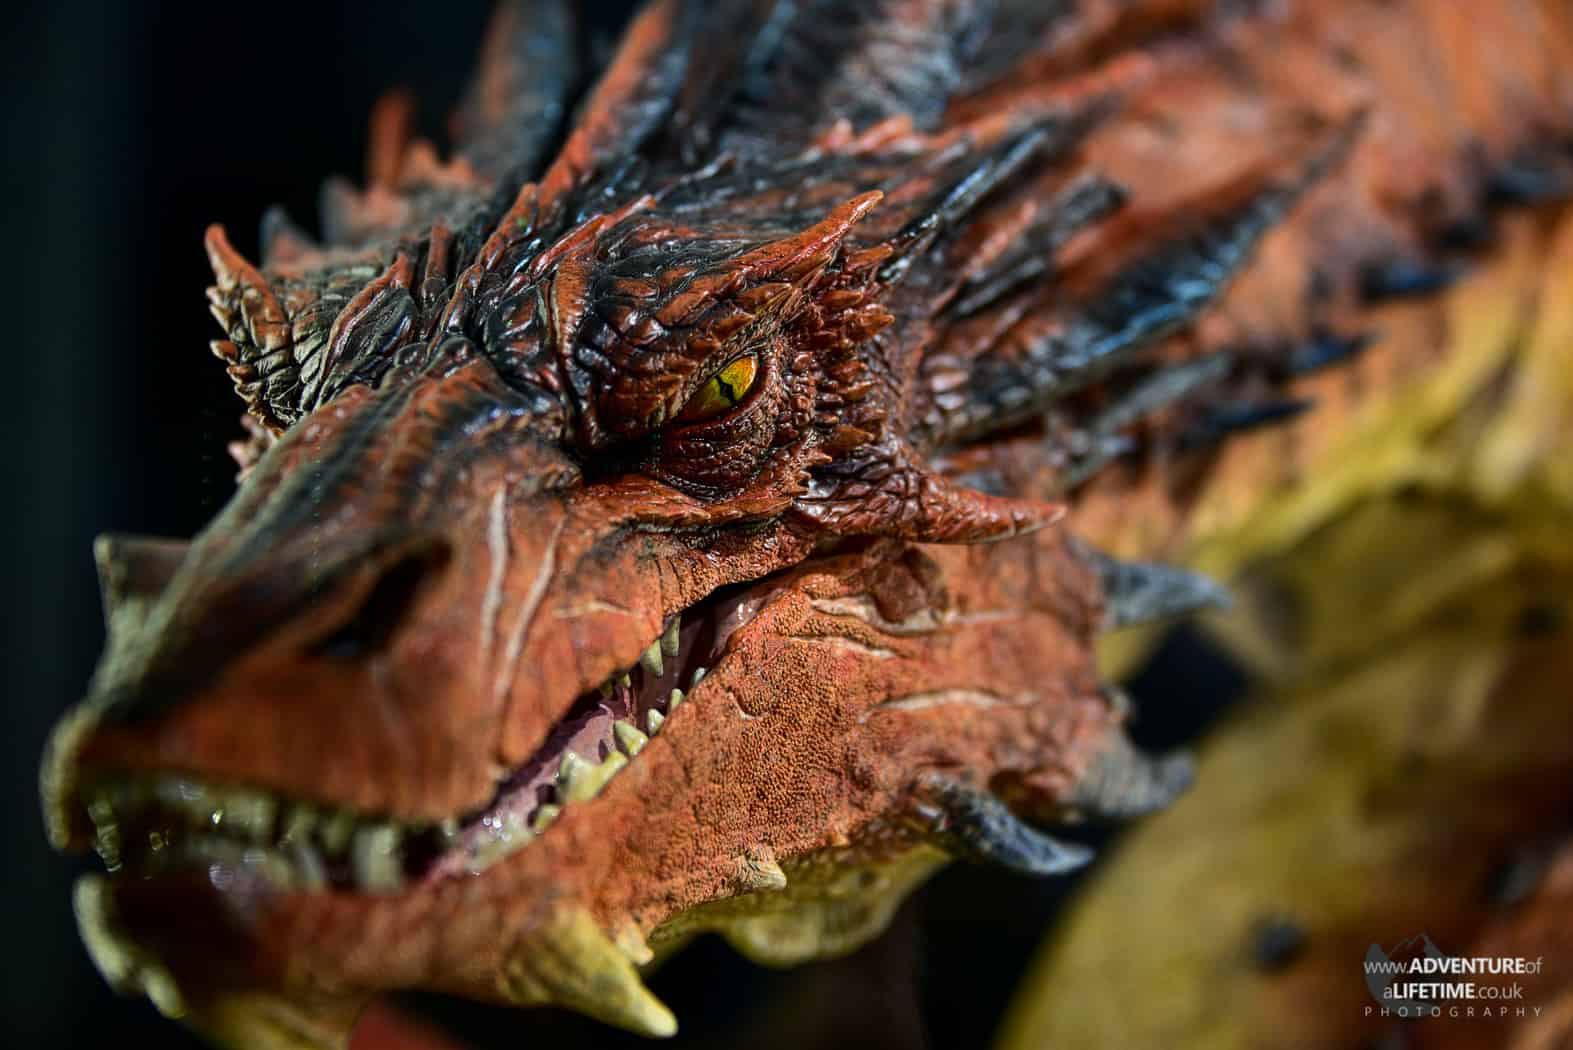 Weta Workshop Smaug the Dragon